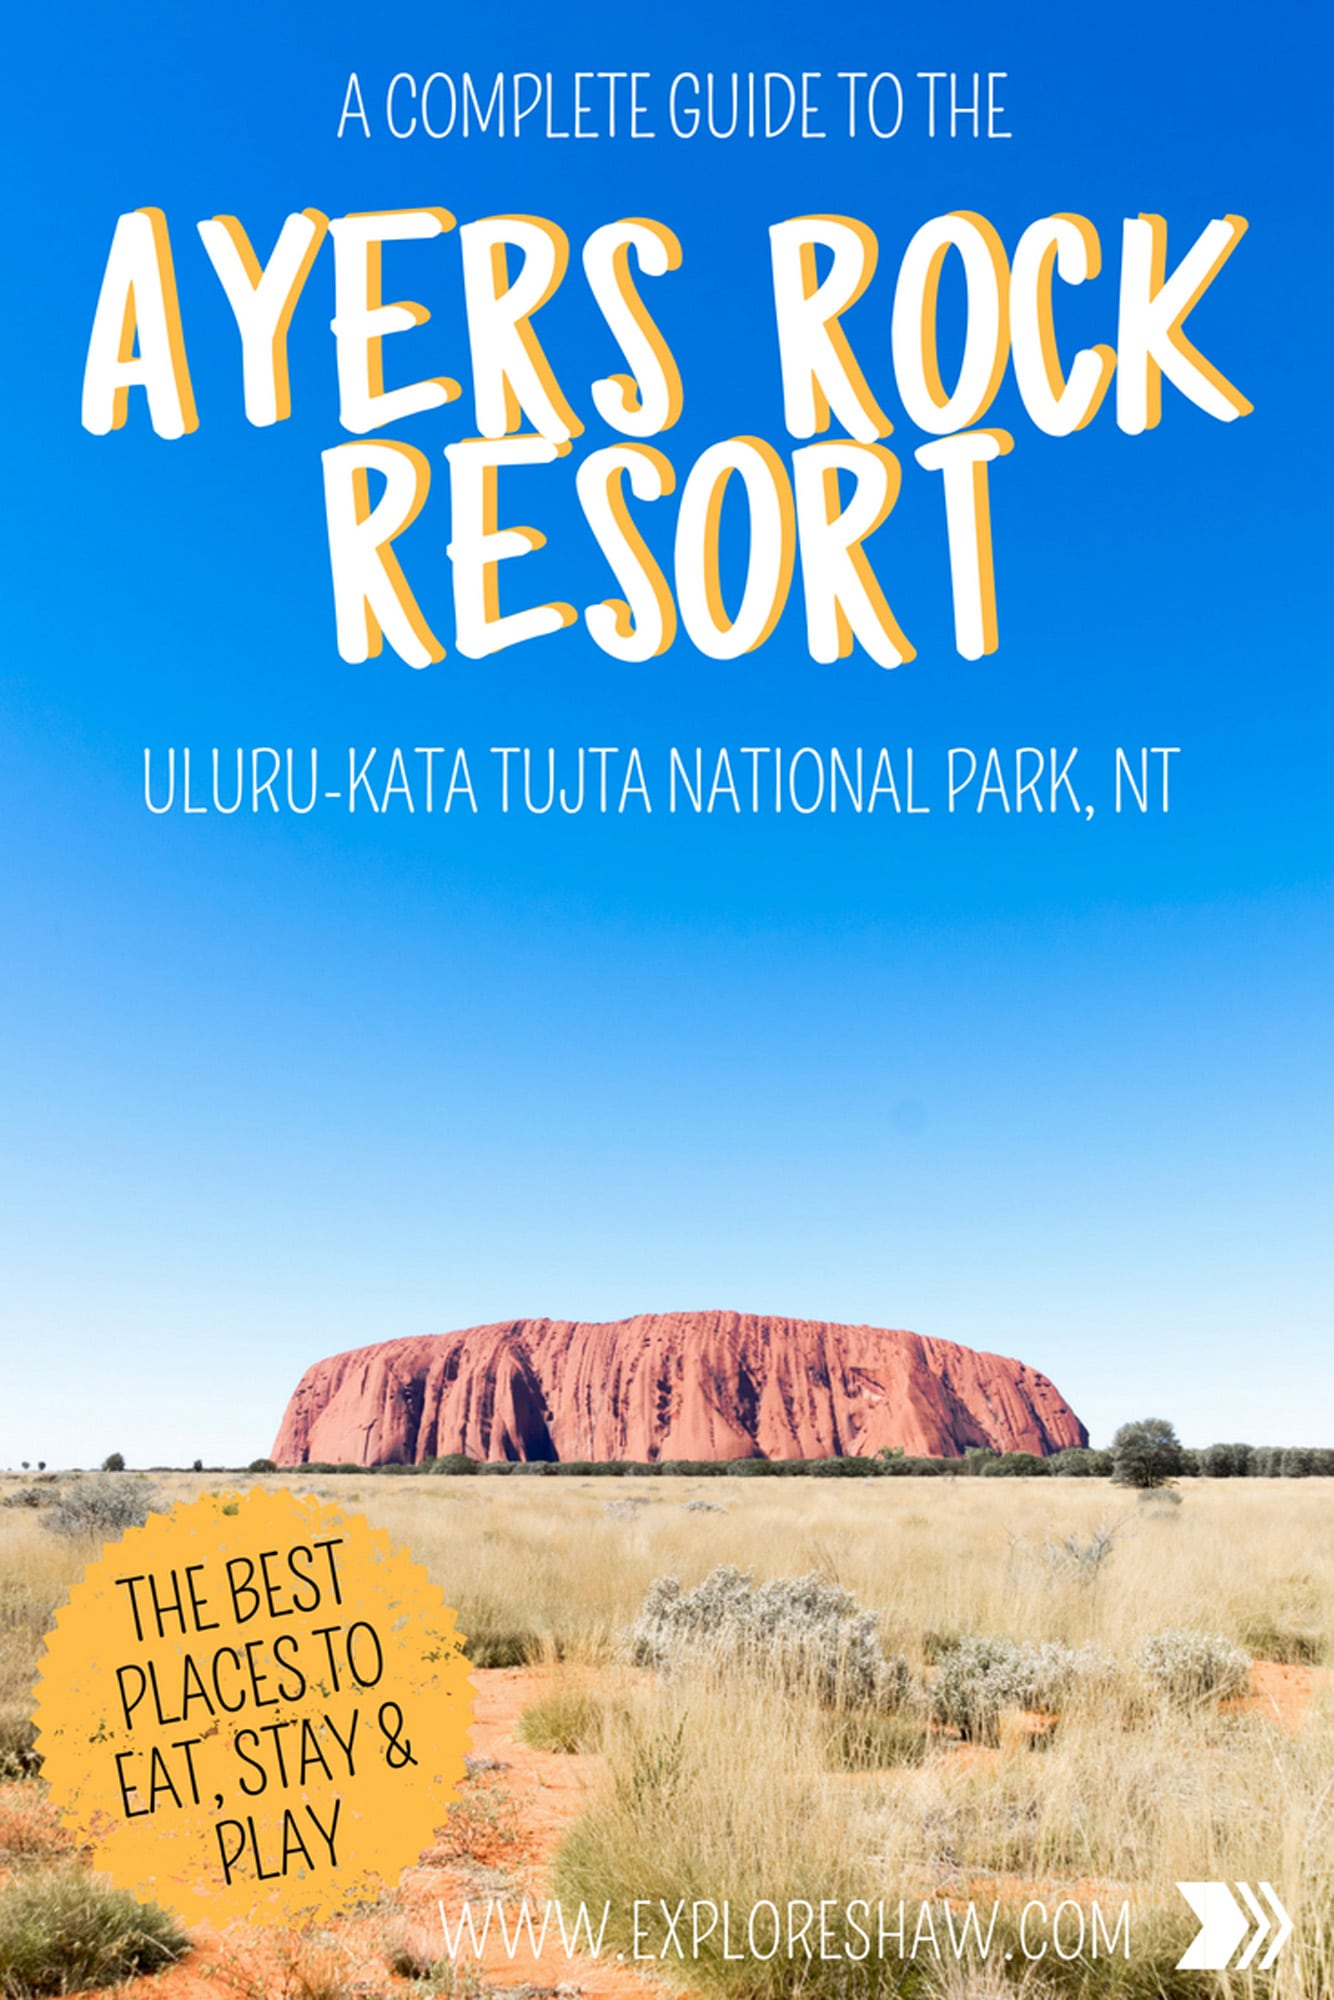 A COMPLETE GUIDE TO AYERS ROCK RESORT